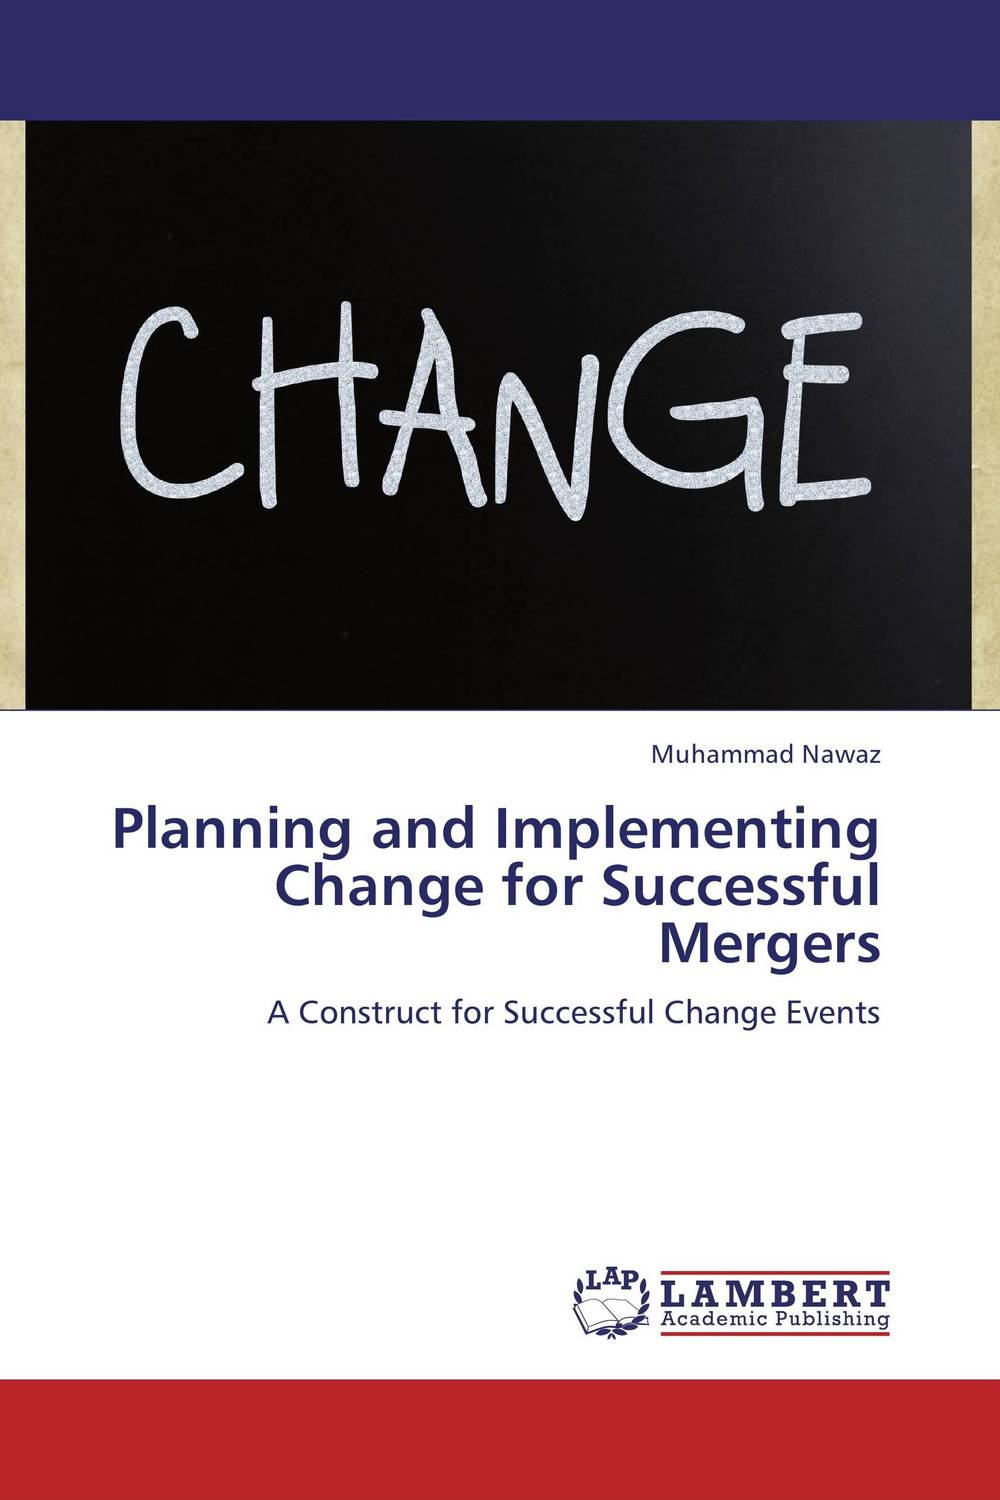 Planning and Implementing Change for Successful Mergers mergers